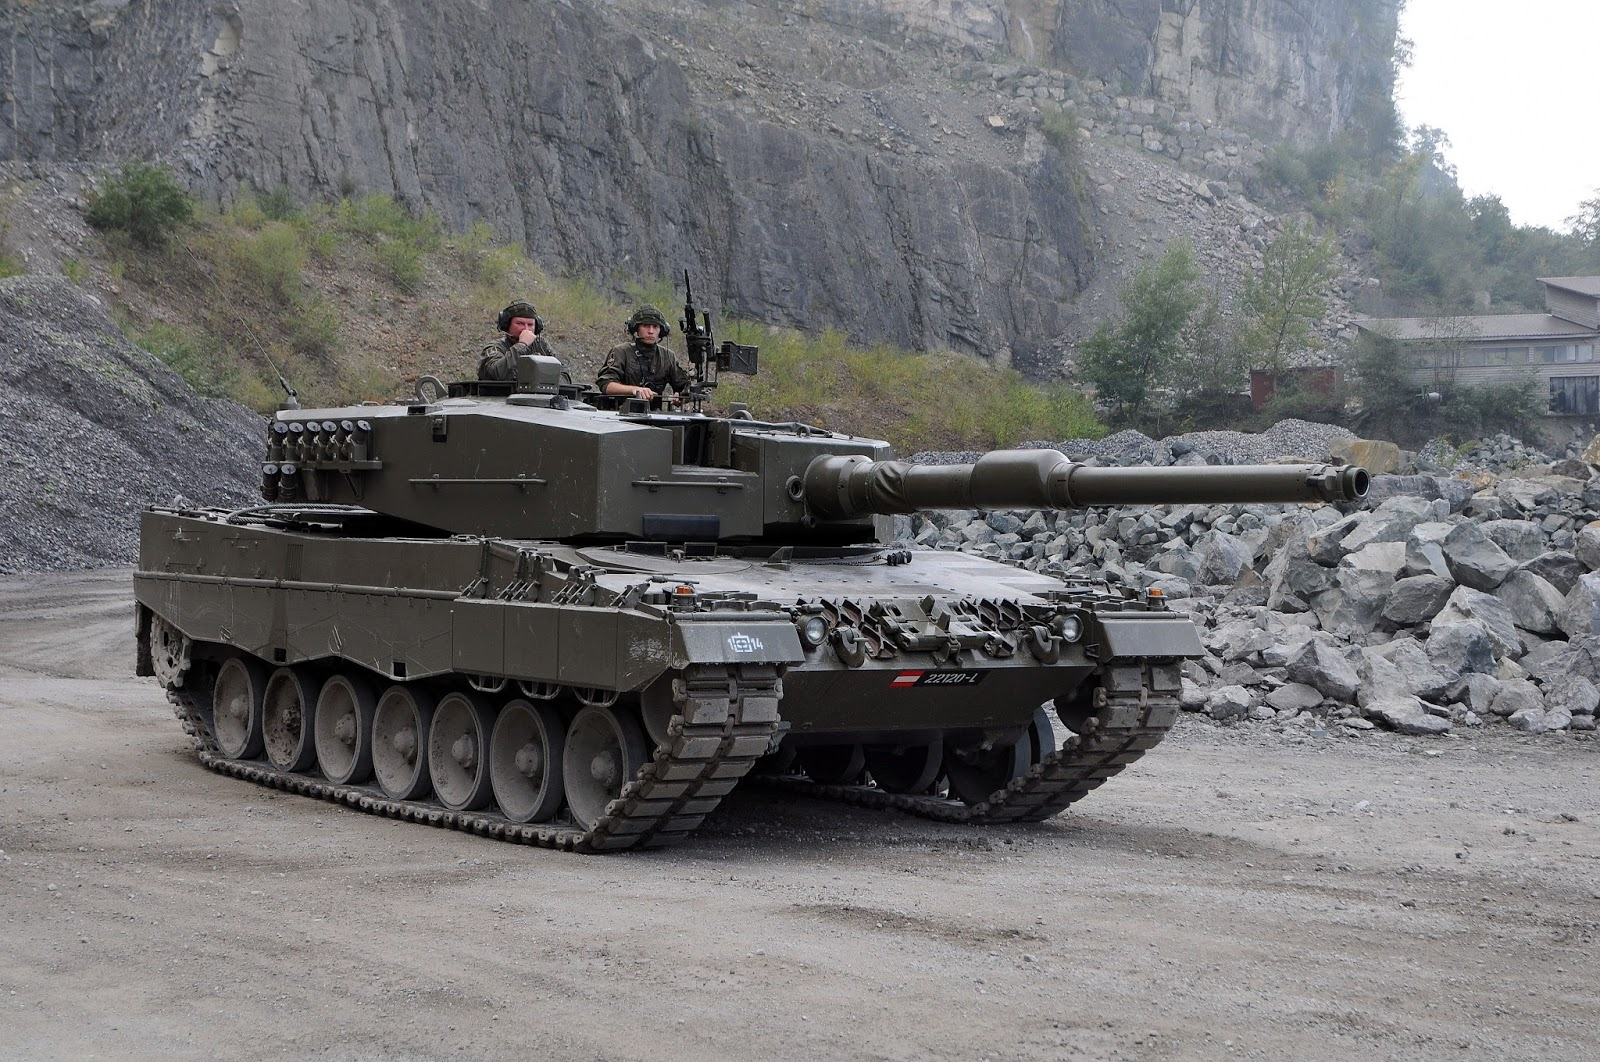 Military Tanks For Sale In Canada >> Full Frame: Singapore's Leopard 2A4 And The Great German Panzer Sale